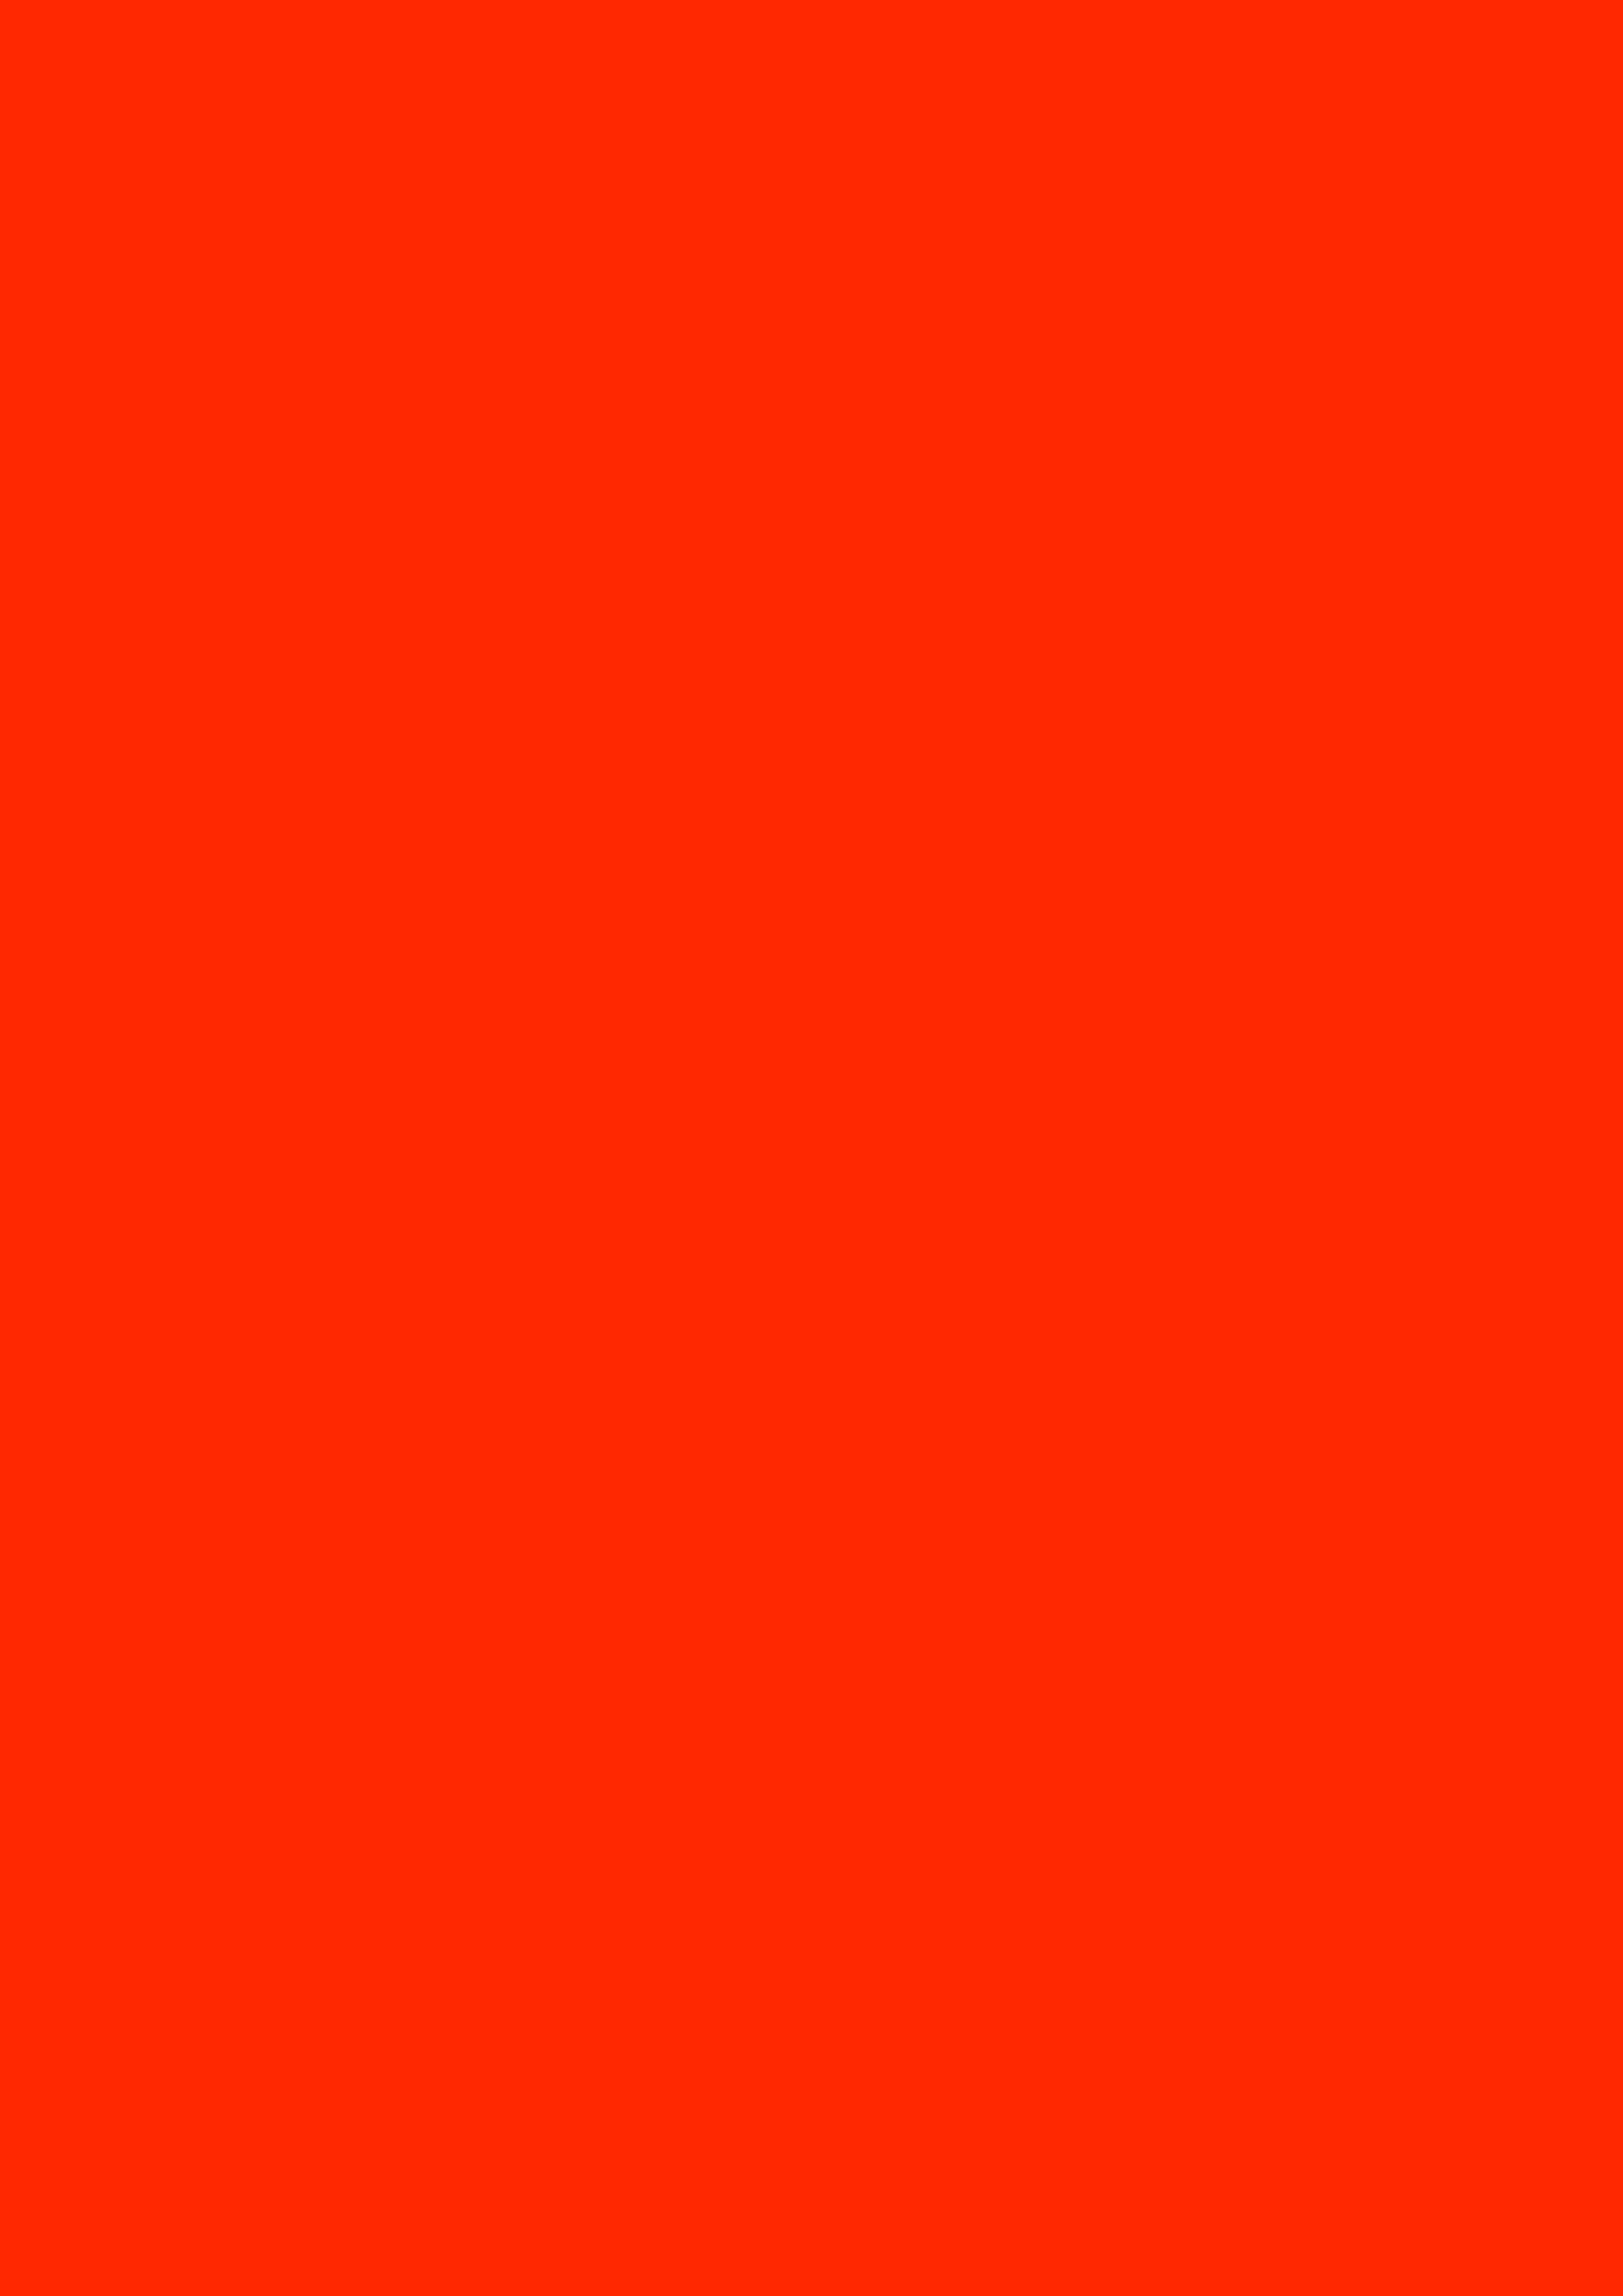 2480x3508 Ferrari Red Solid Color Background